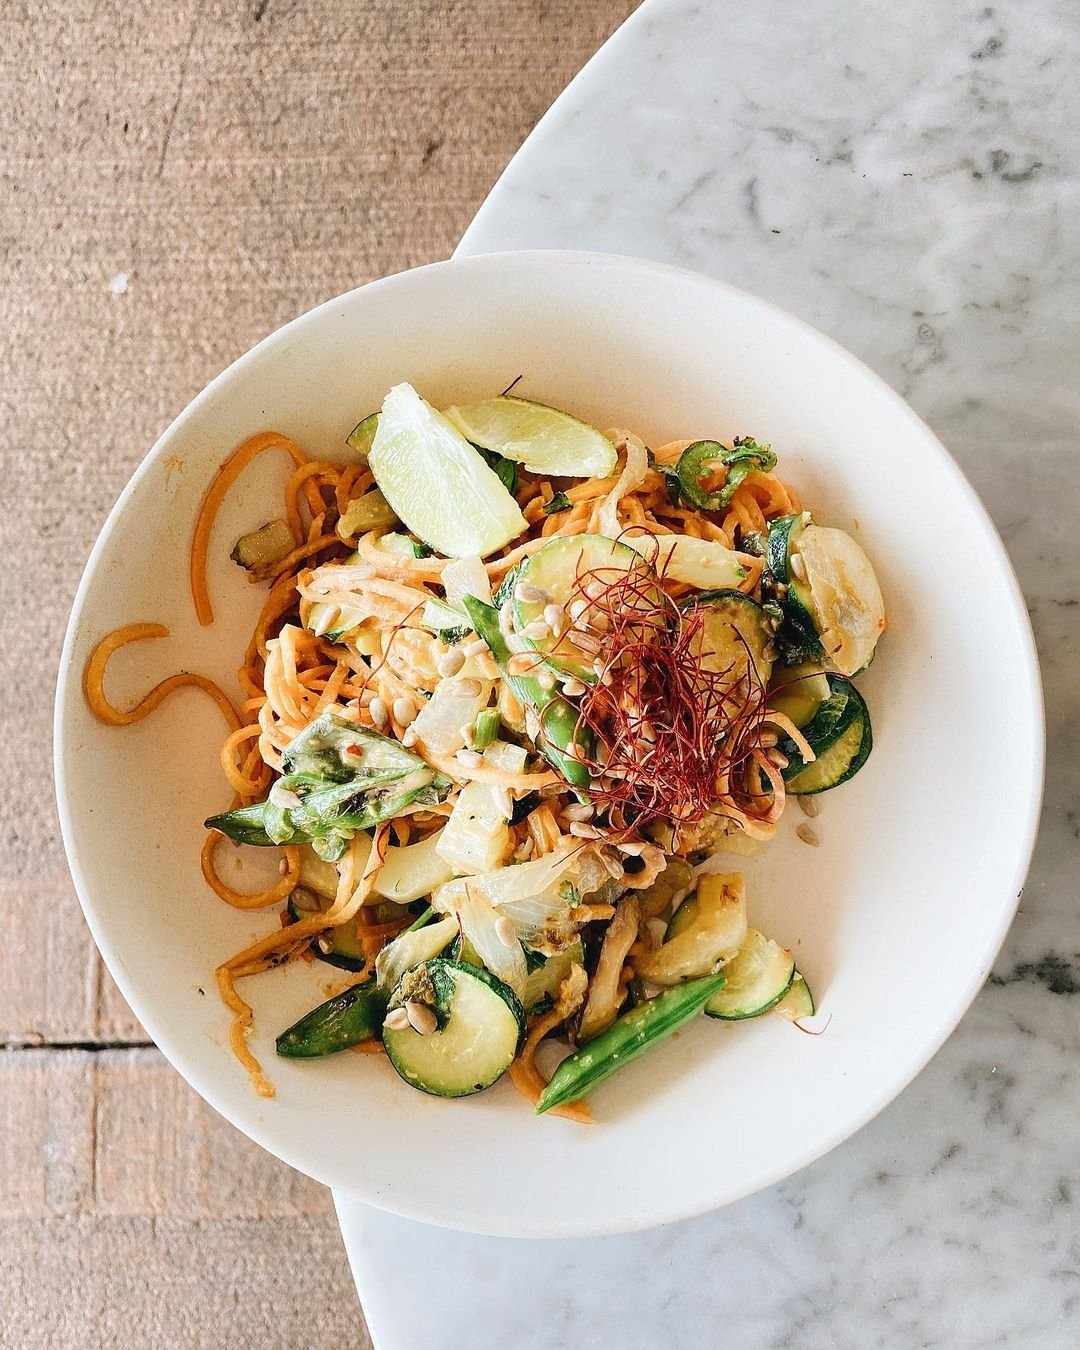 Photo by user texaztaste, caption reads Glow Bowl from @eatflowerchild has a delicious combination of sweet potato noodles with bok choy, zucchini, jalapeños, shiitake mushrooms, and snap peas in a coconut milk sauce. #flowerchild #glowbowl #vegan #azblogger #foodblogger #instafood #igfoodies #foodie #foodwriter #foodstagram #azfoodie #foodphotographer #foodlover #bloglovinfood #instafoodie #eater #dailyfoodfeed #foodbeast #phoenixeats #phoenixfoodie #huffposttaste #texaztaste #eatsaz #azfoodblogger #foodandwine #thedailybite #myphx